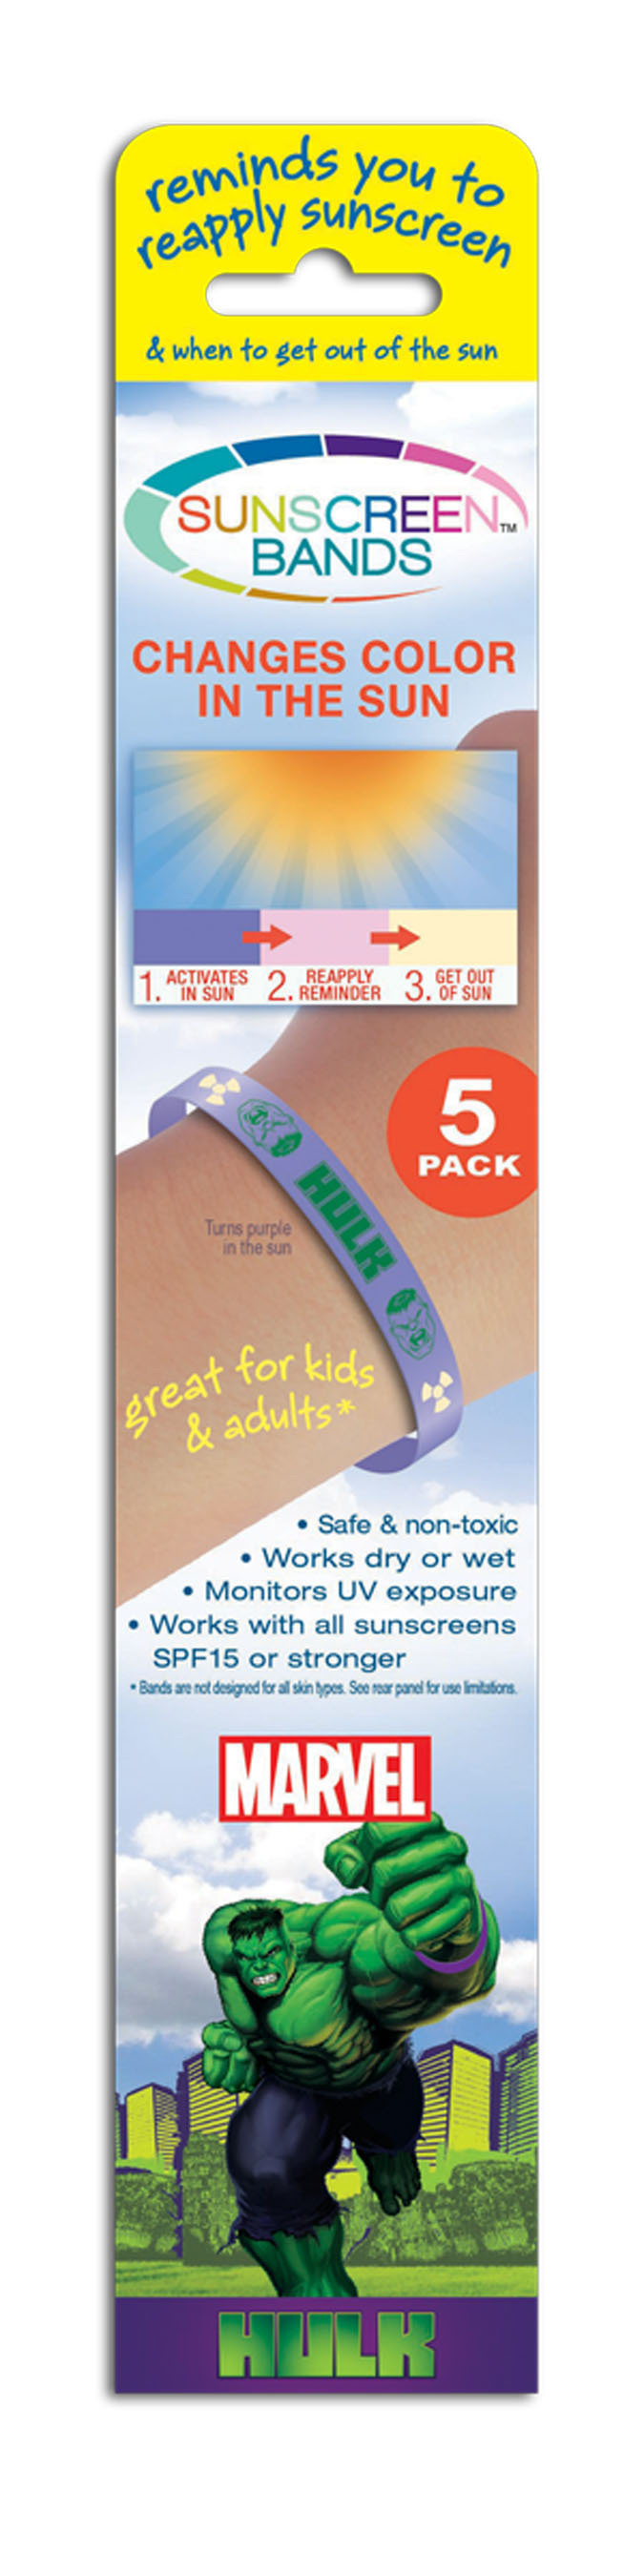 Sunscreen Bands Monitor UV Exposure and Come in Fun Designs. (PRNewsFoto/JADS International, LLC) ...